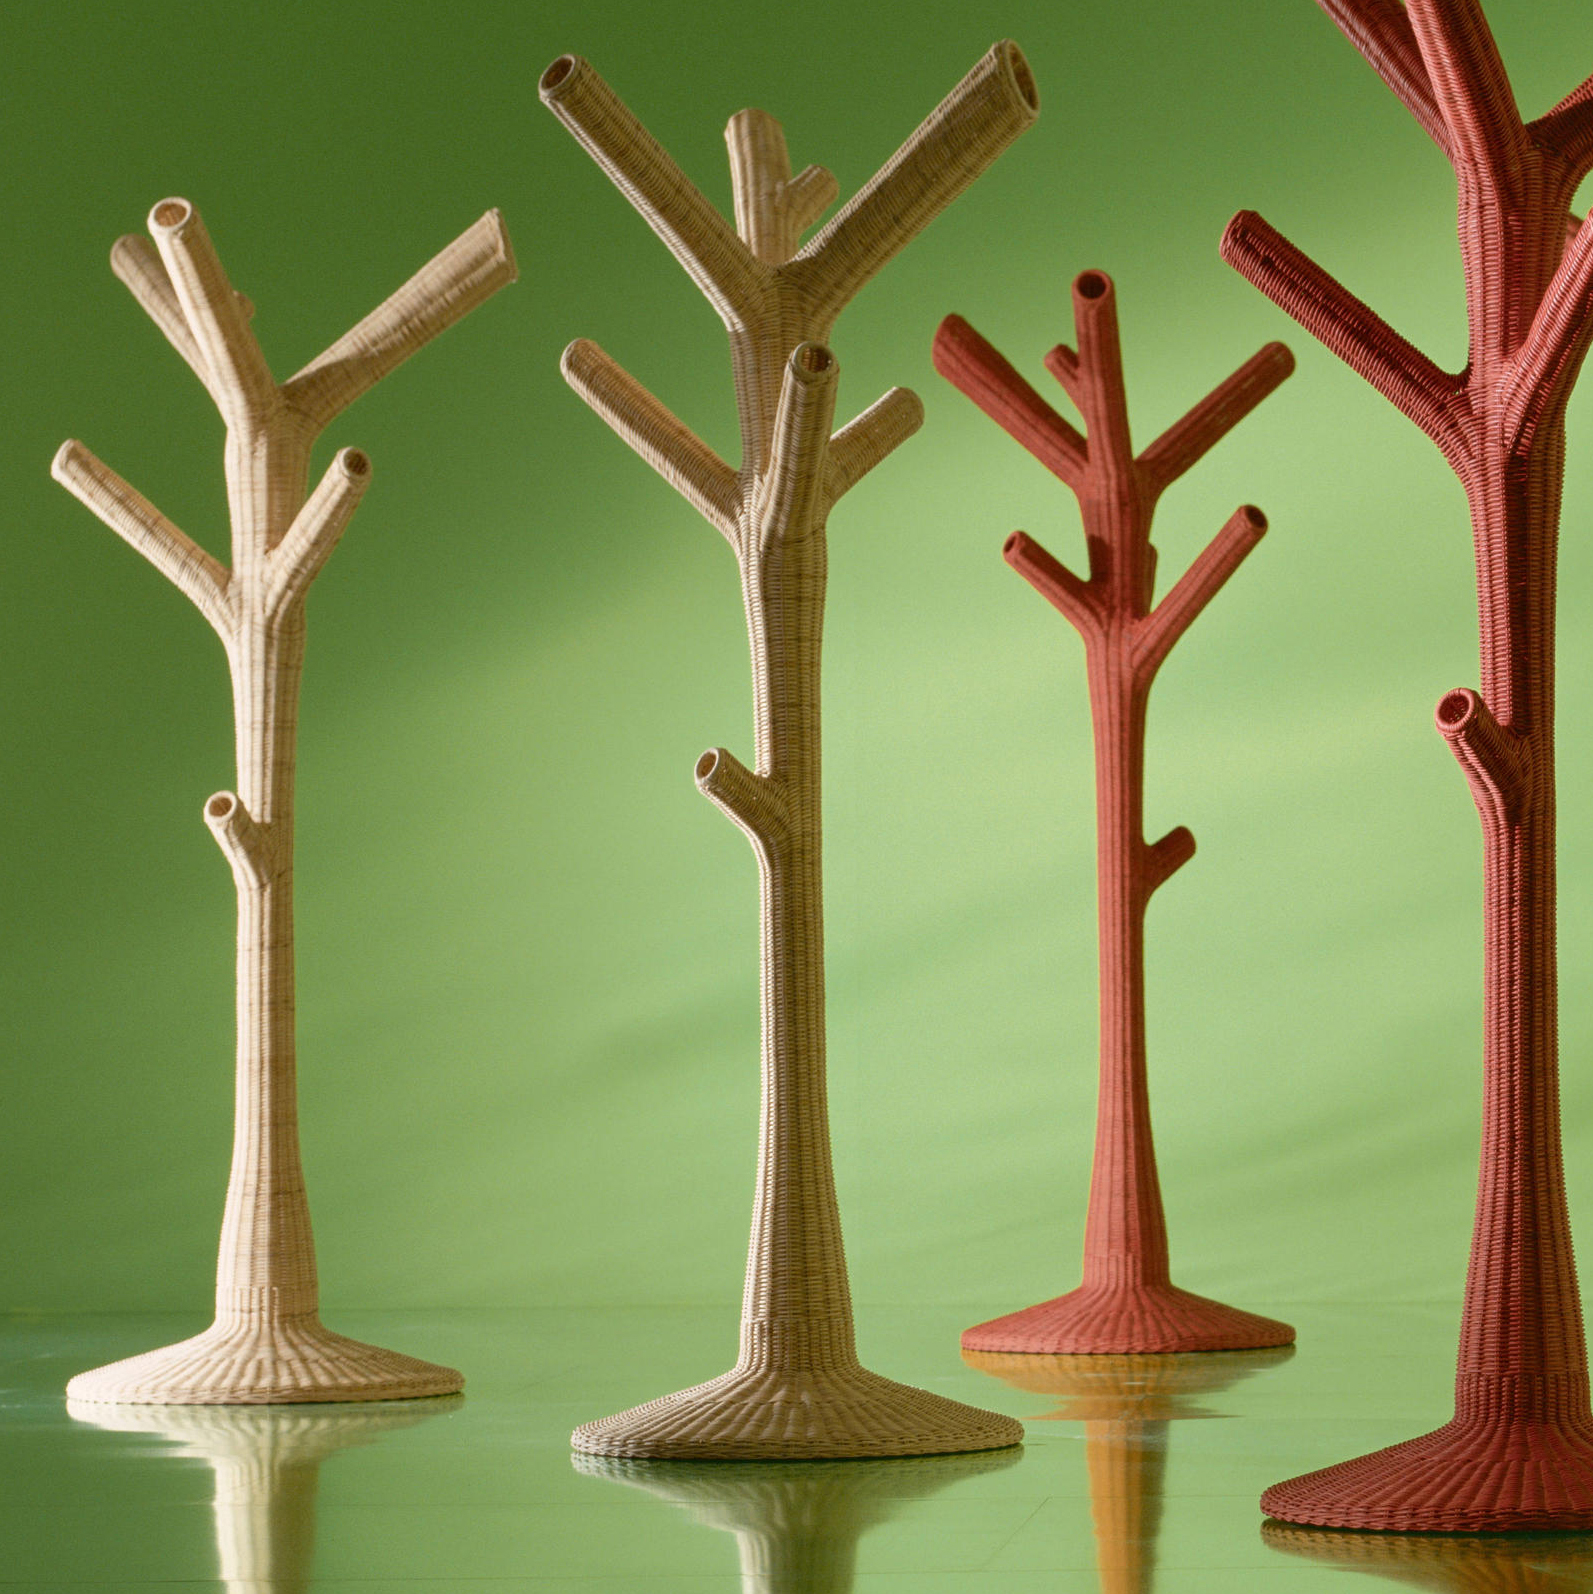 GERVASONIcorallo coat stand - Coat hanger in natural melange rattan core; available in white.